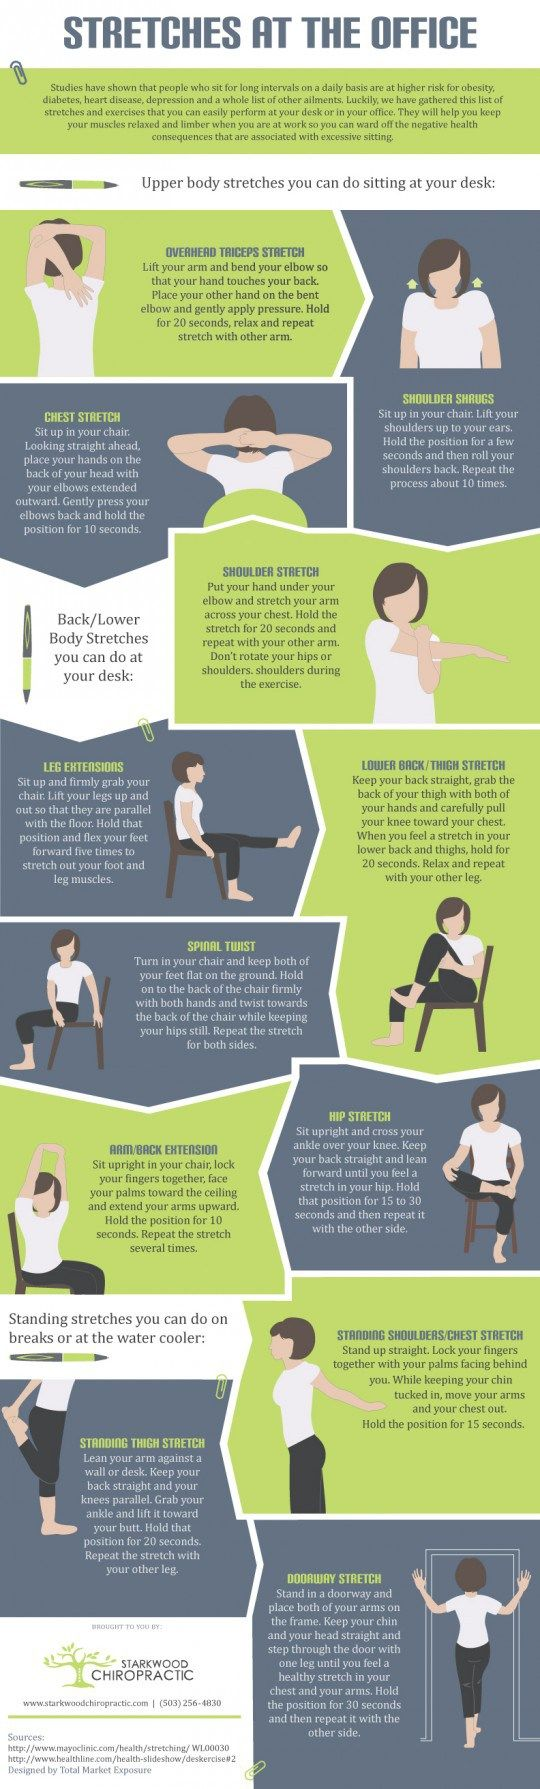 Infographic: 12 Stretch Exercises You Can Do at Your Desk